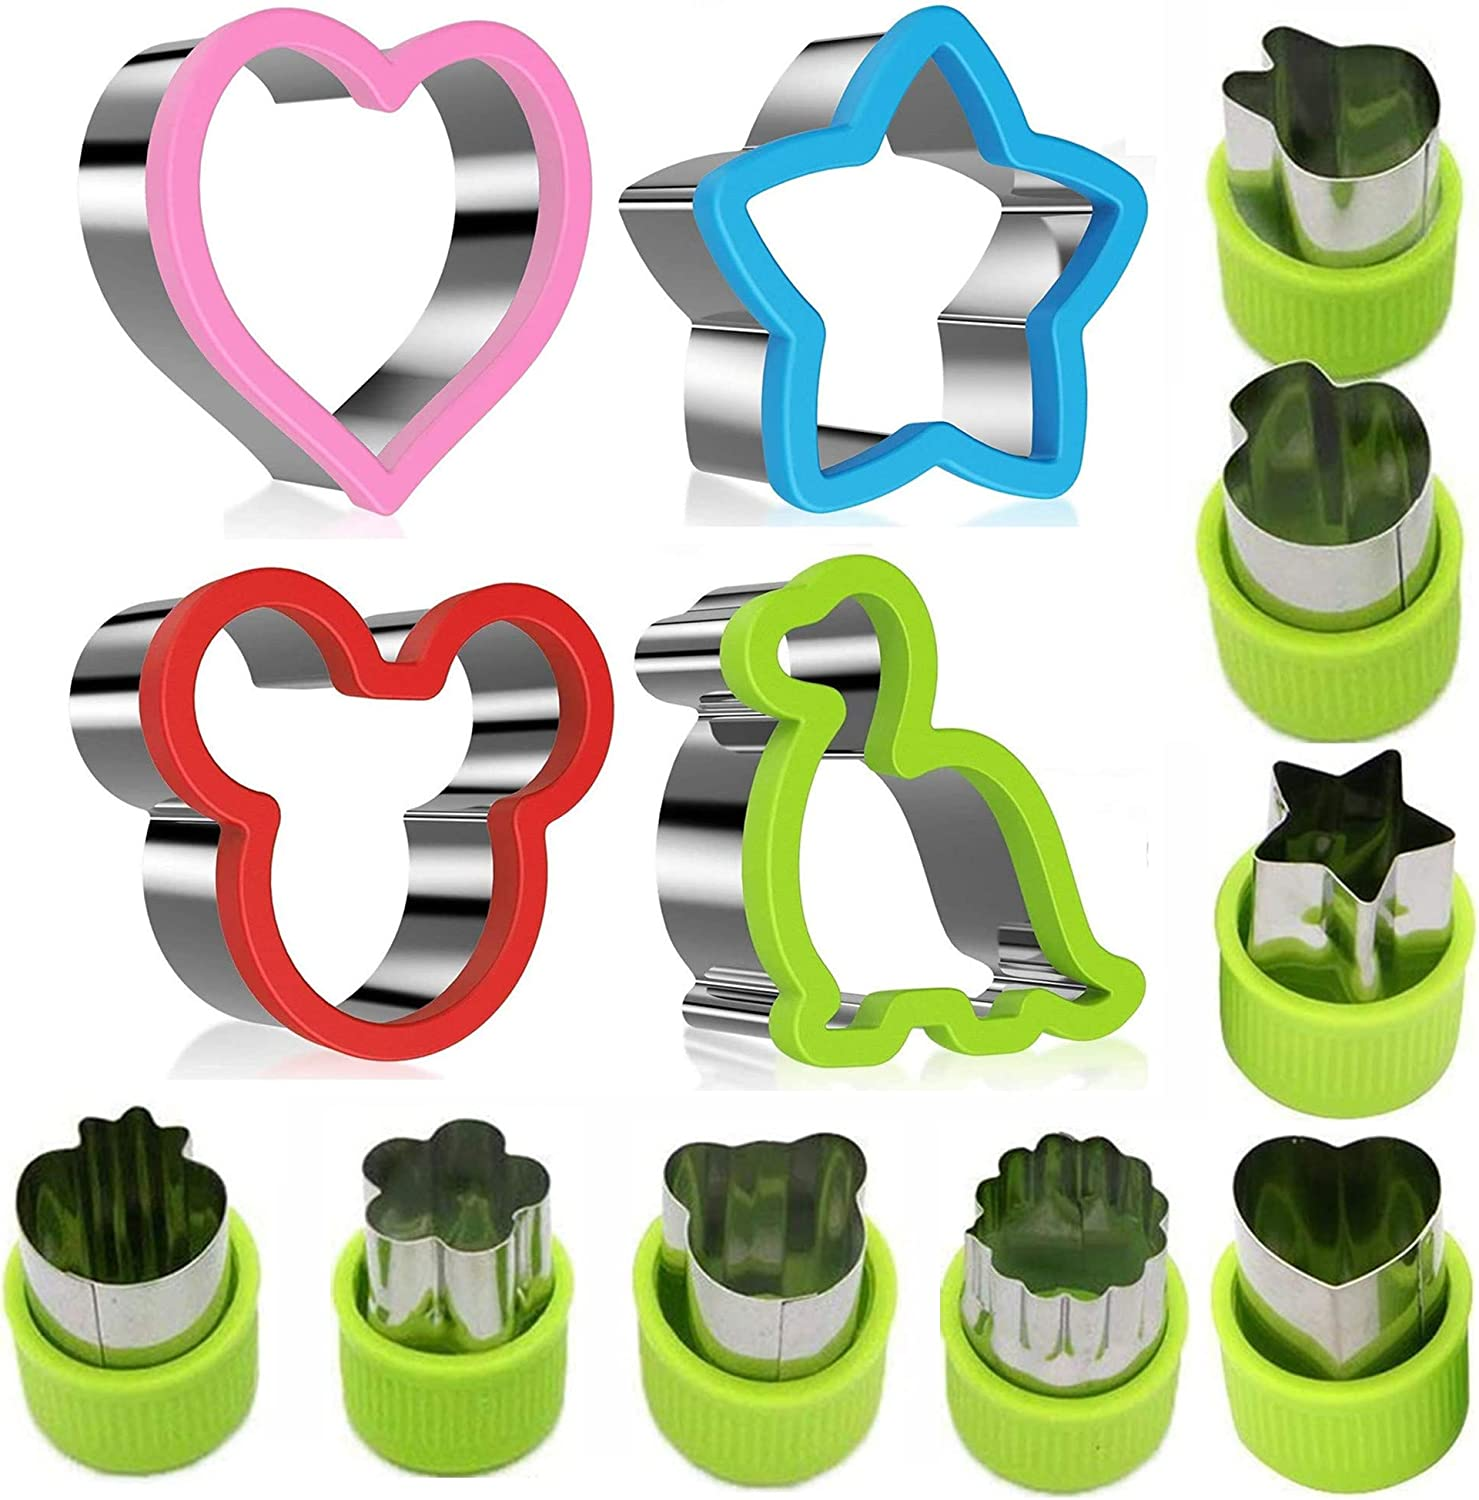 Sandwiches Cutter set(12 Pack), Mickey Mouse,Dinosaur ,Heart ,Star Shapes Sandwich Cutters Cookie Cutters Vegetable cutters-Food Grade Cookie Cutter Mold for Kids